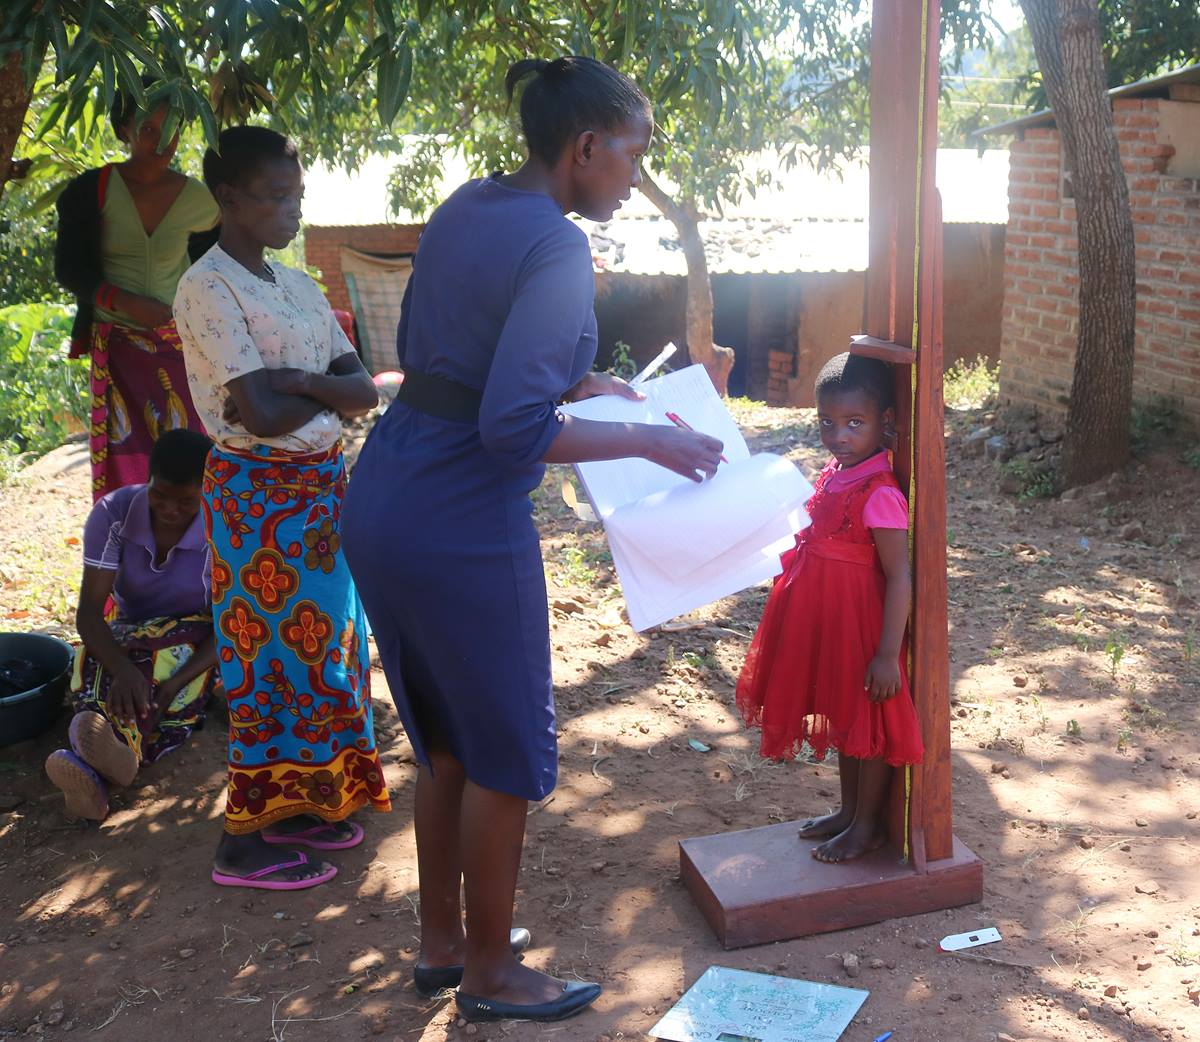 Agness David, 4, is measured for weight and height in Malawi where many children suffer from malnutrition. She is receiving nutritional support through the help of the Malawi United Methodist Church. Photo by Francis Nkhoma, UMNS.